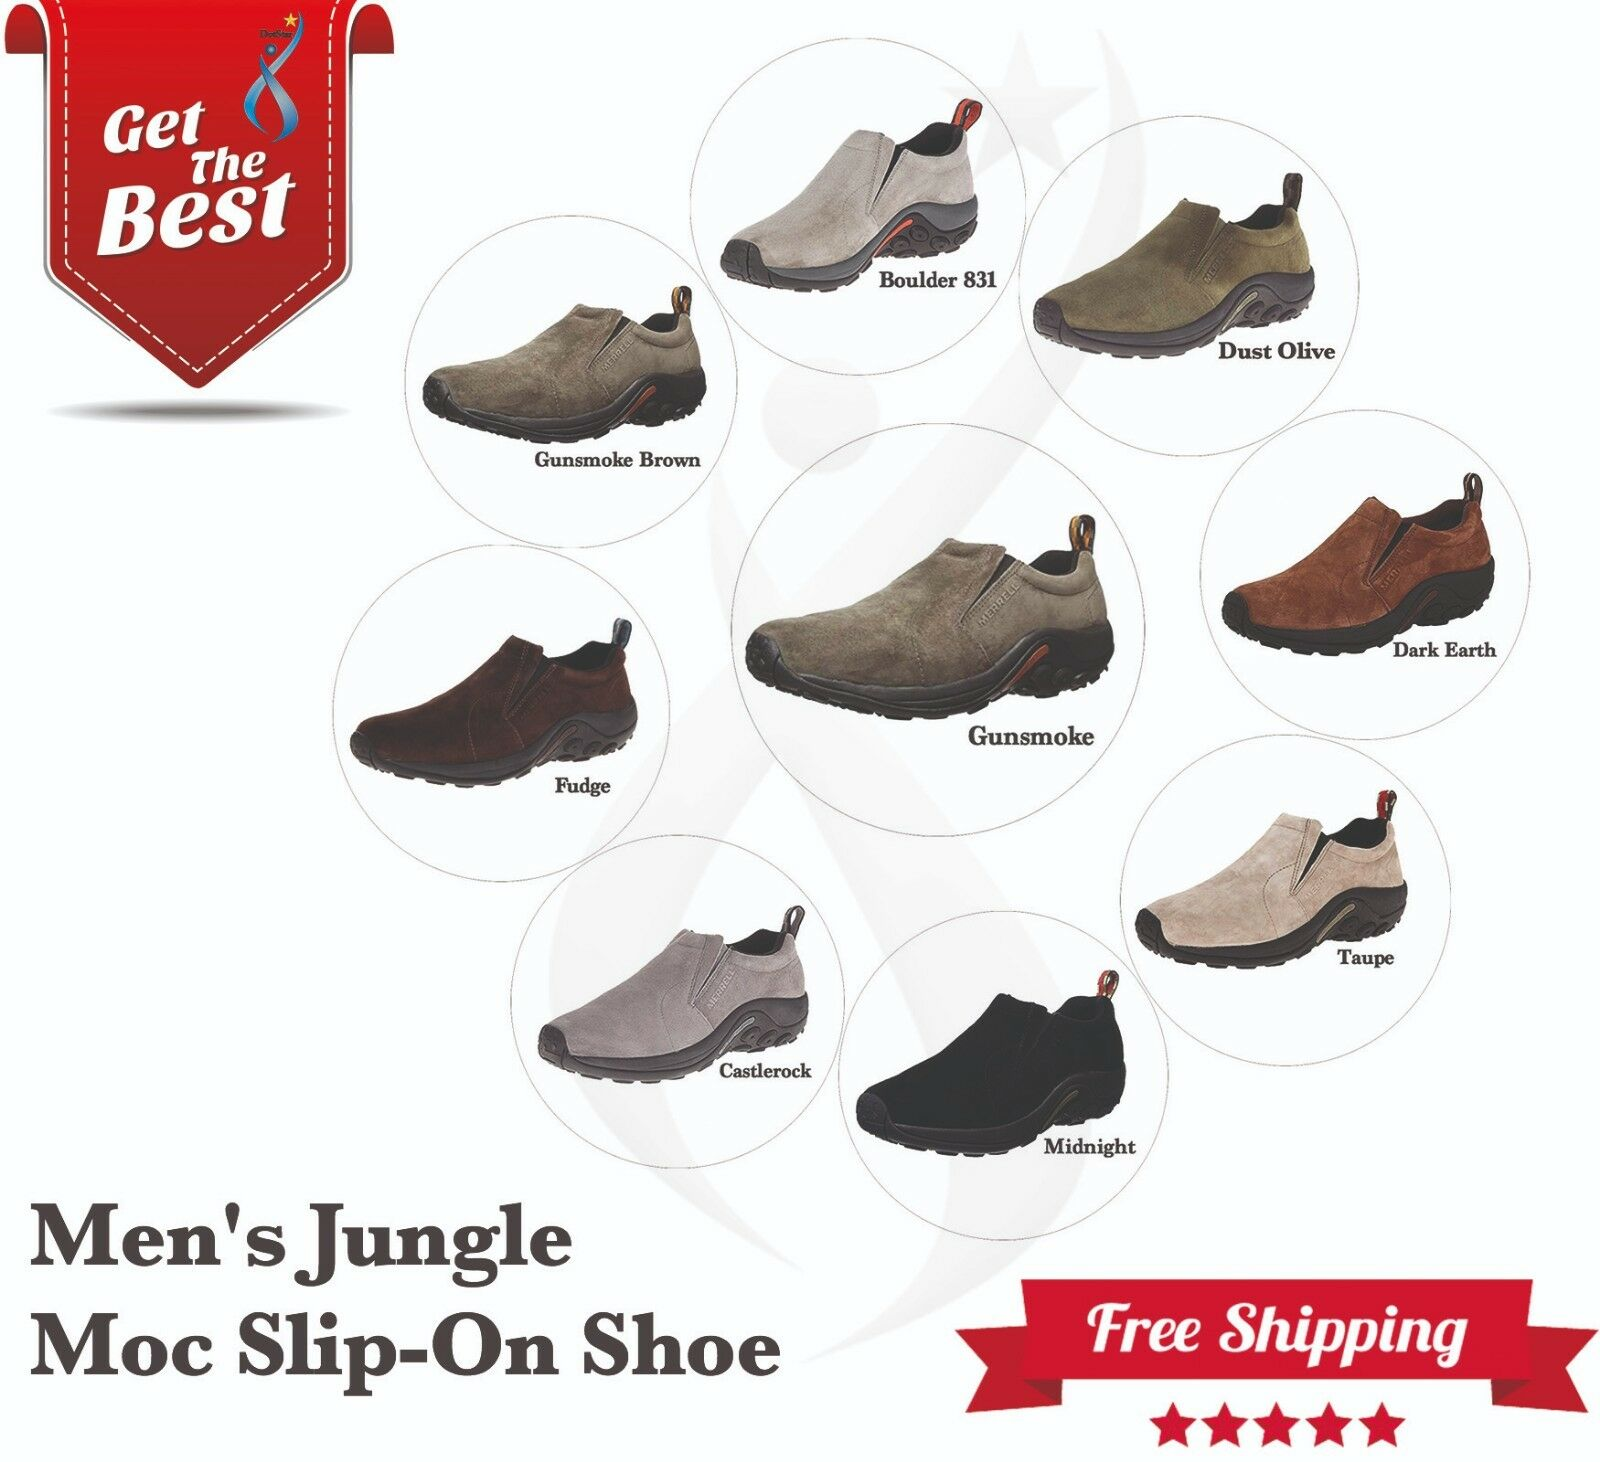 Merrell Chaussures Homme Jungle Moc Slip-On chaussures